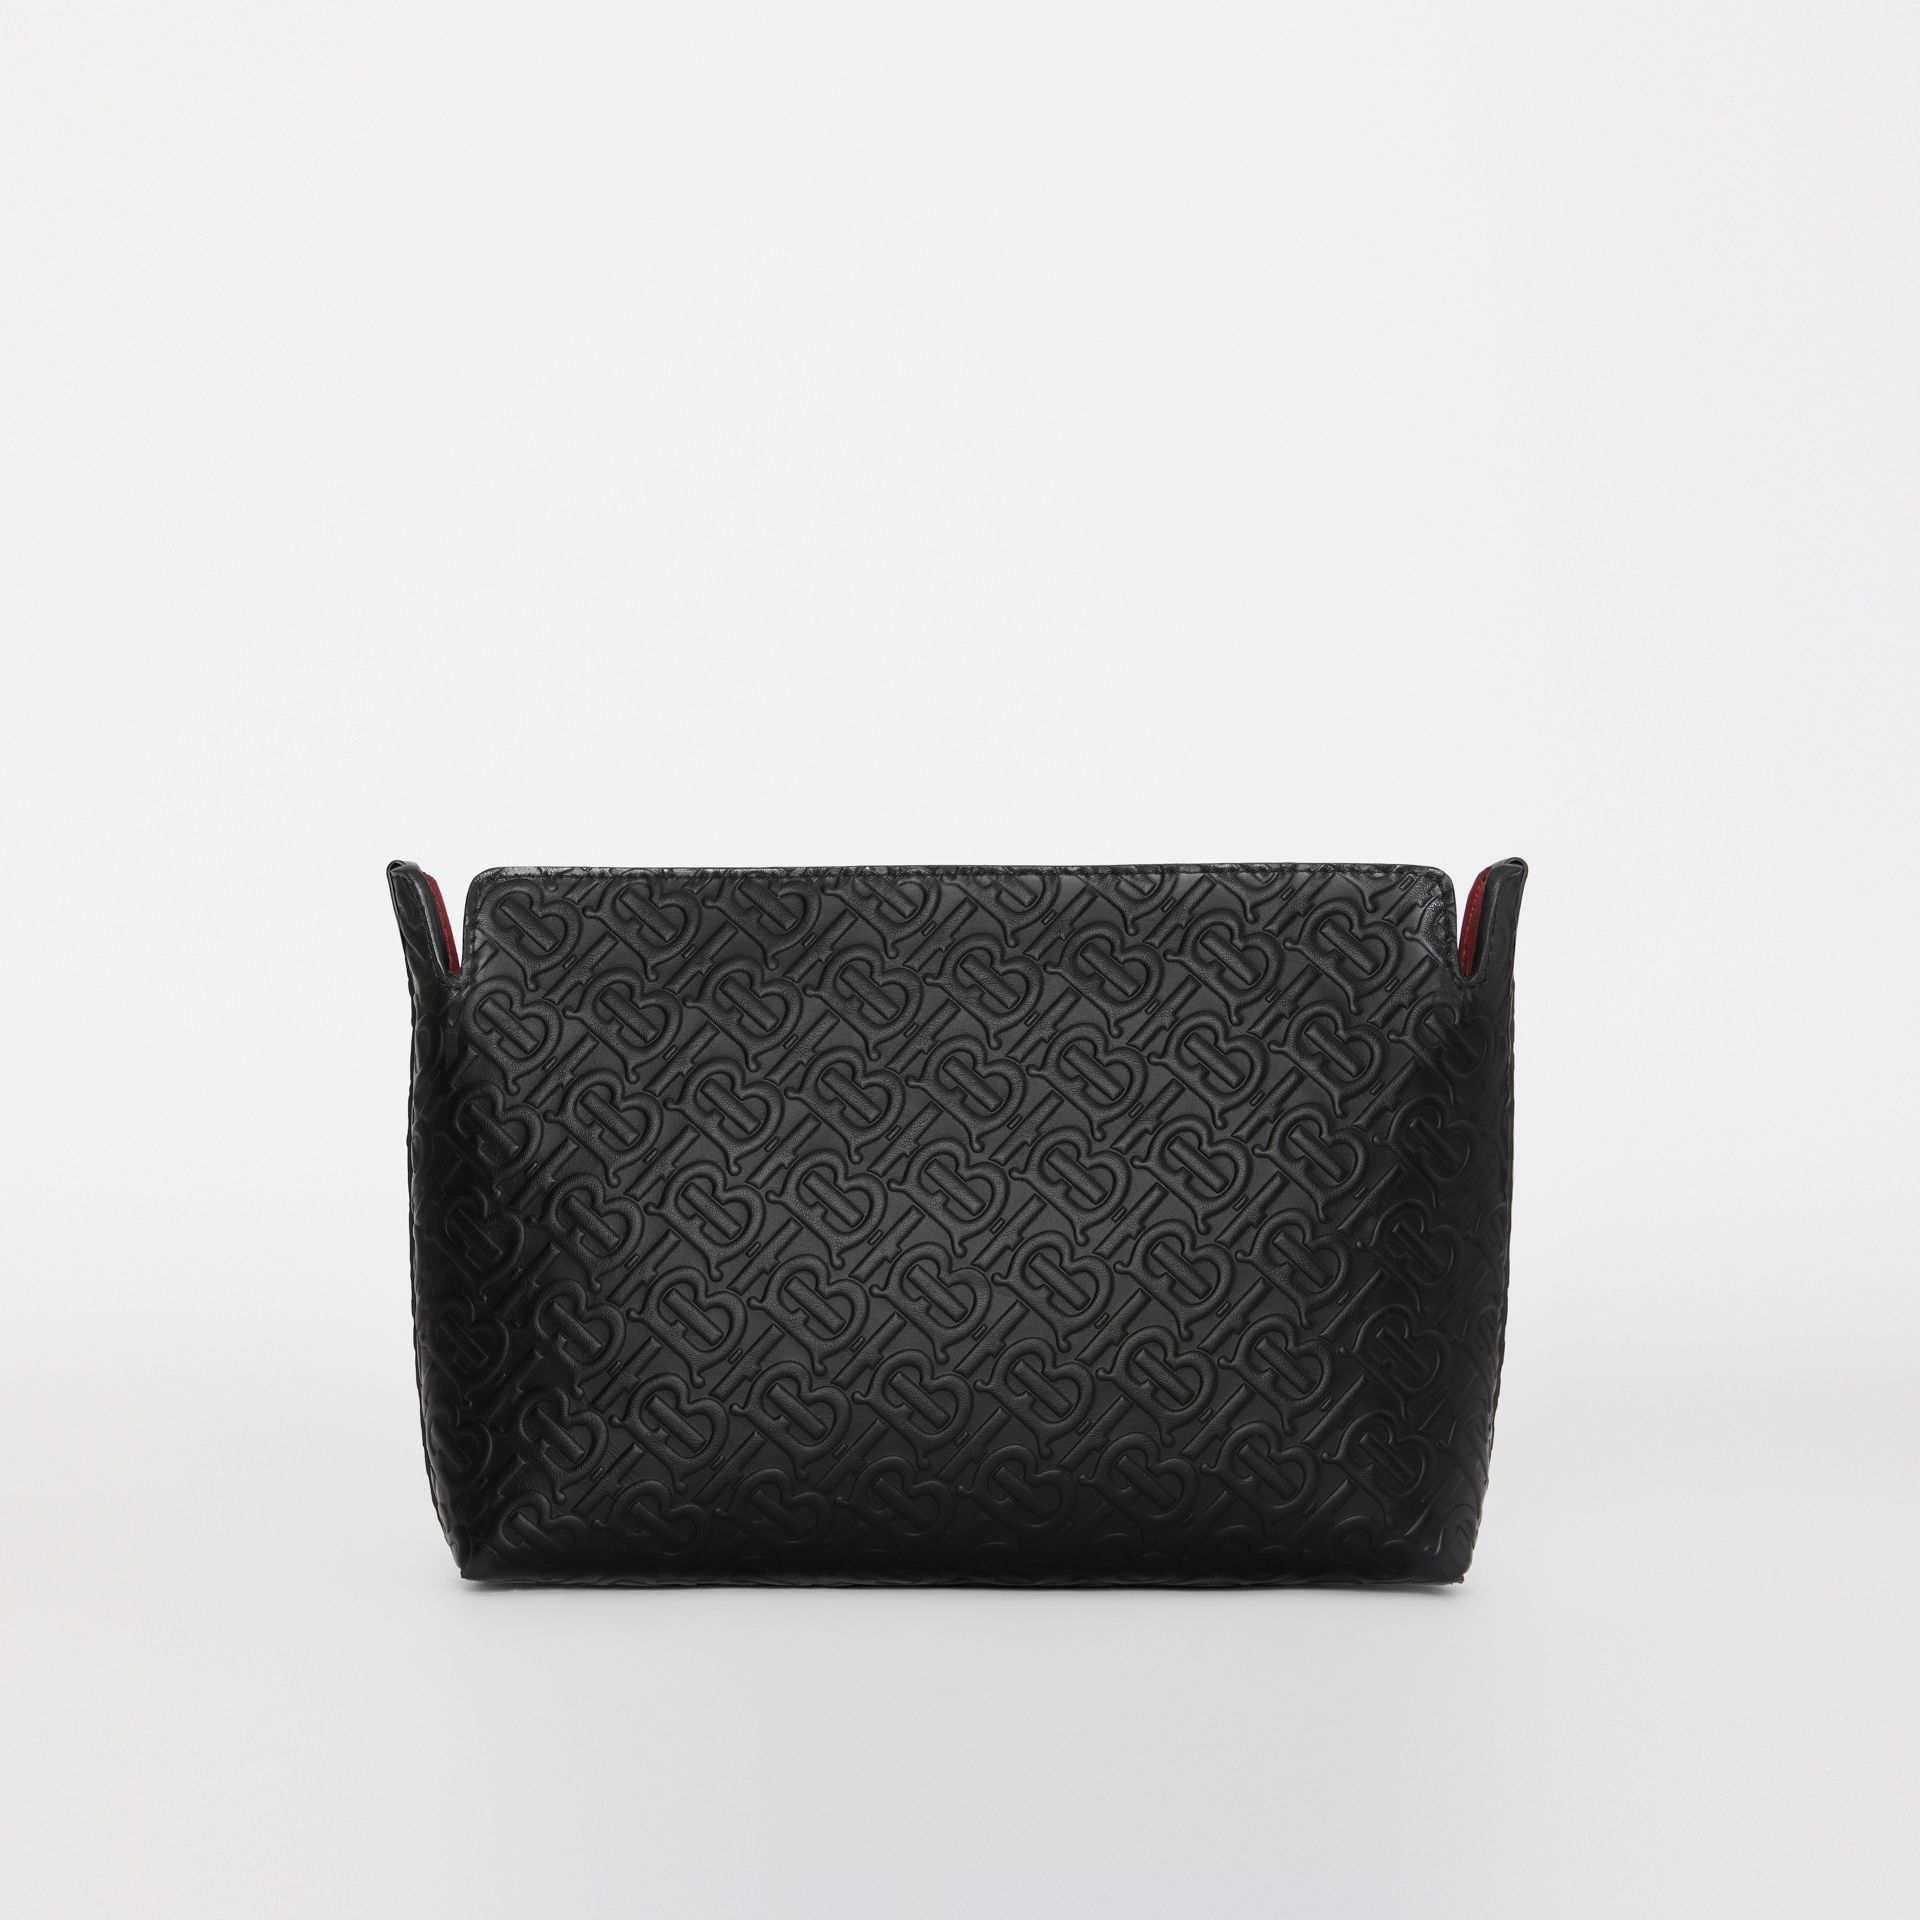 Medium Monogram Leather Clutch in Black - Women | Burberry United Kingdom - gallery image 0